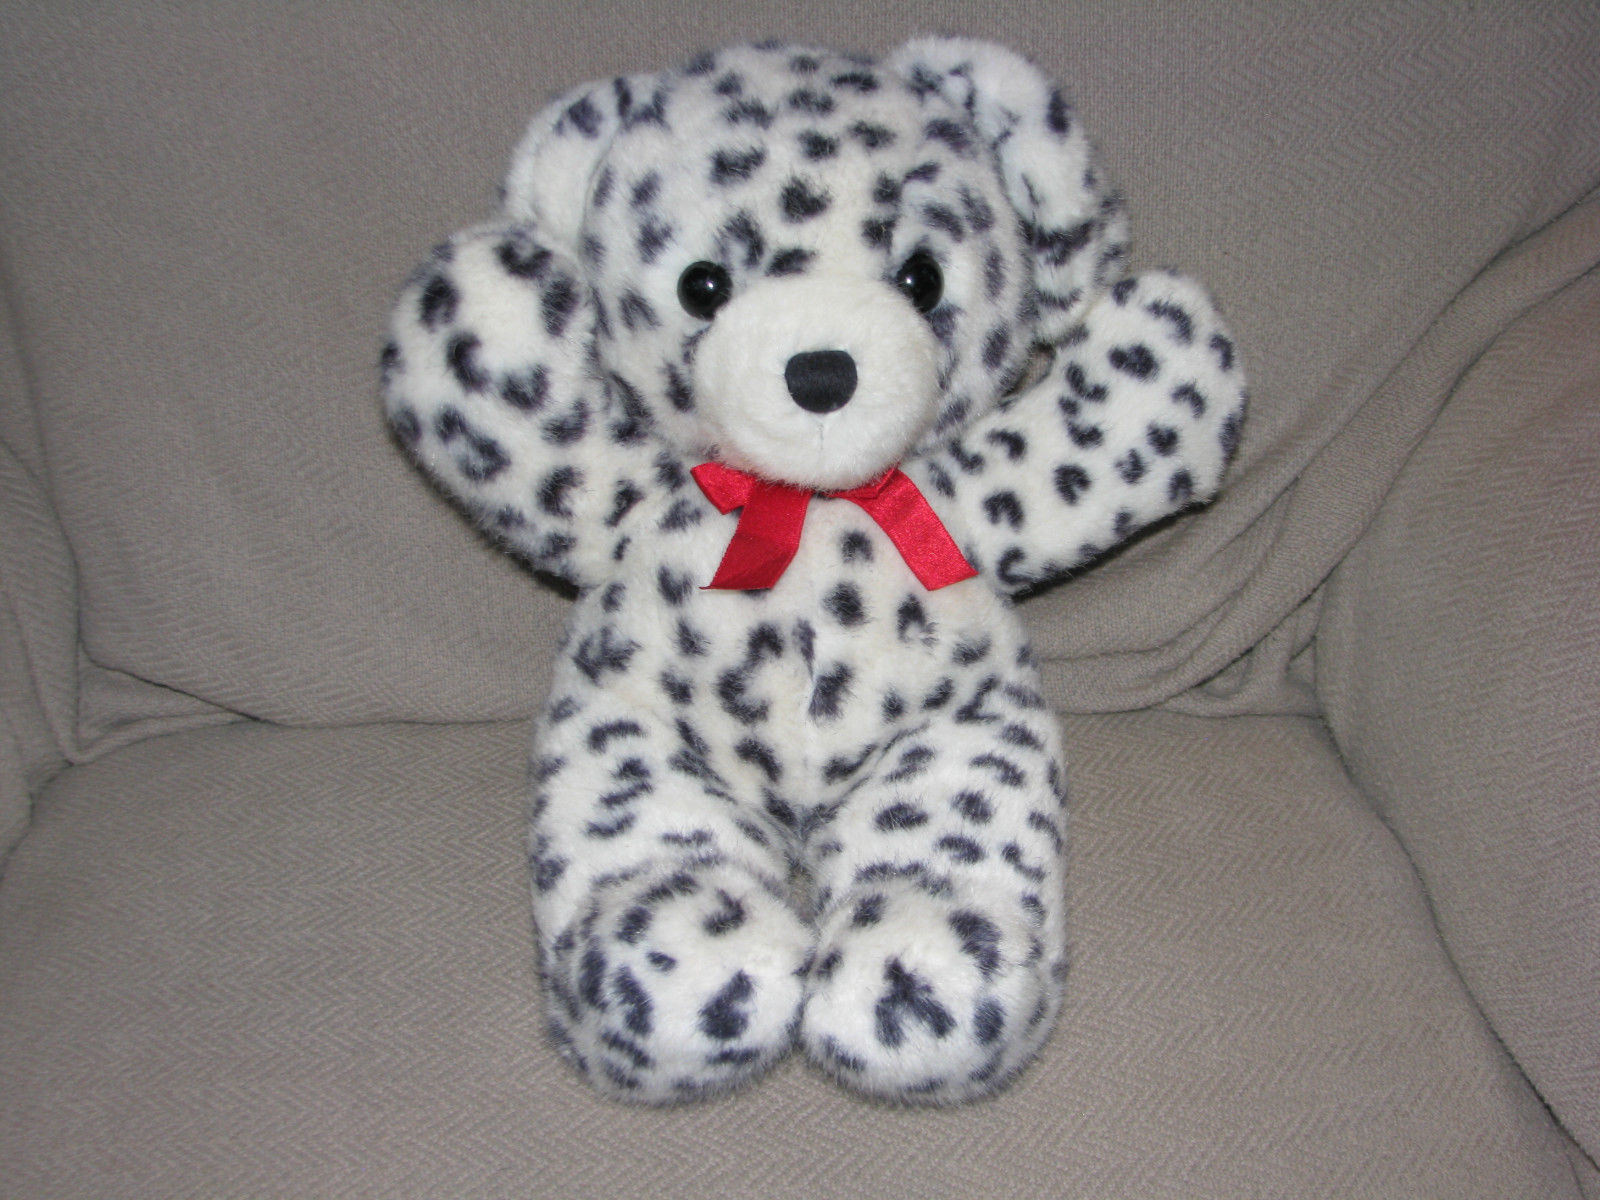 Primary image for DAKIN STUFFED PLUSH 1989 CUDDLES TEDDY BEAR PUPPY DOG DALMATIAN LEOPARD SPOTS